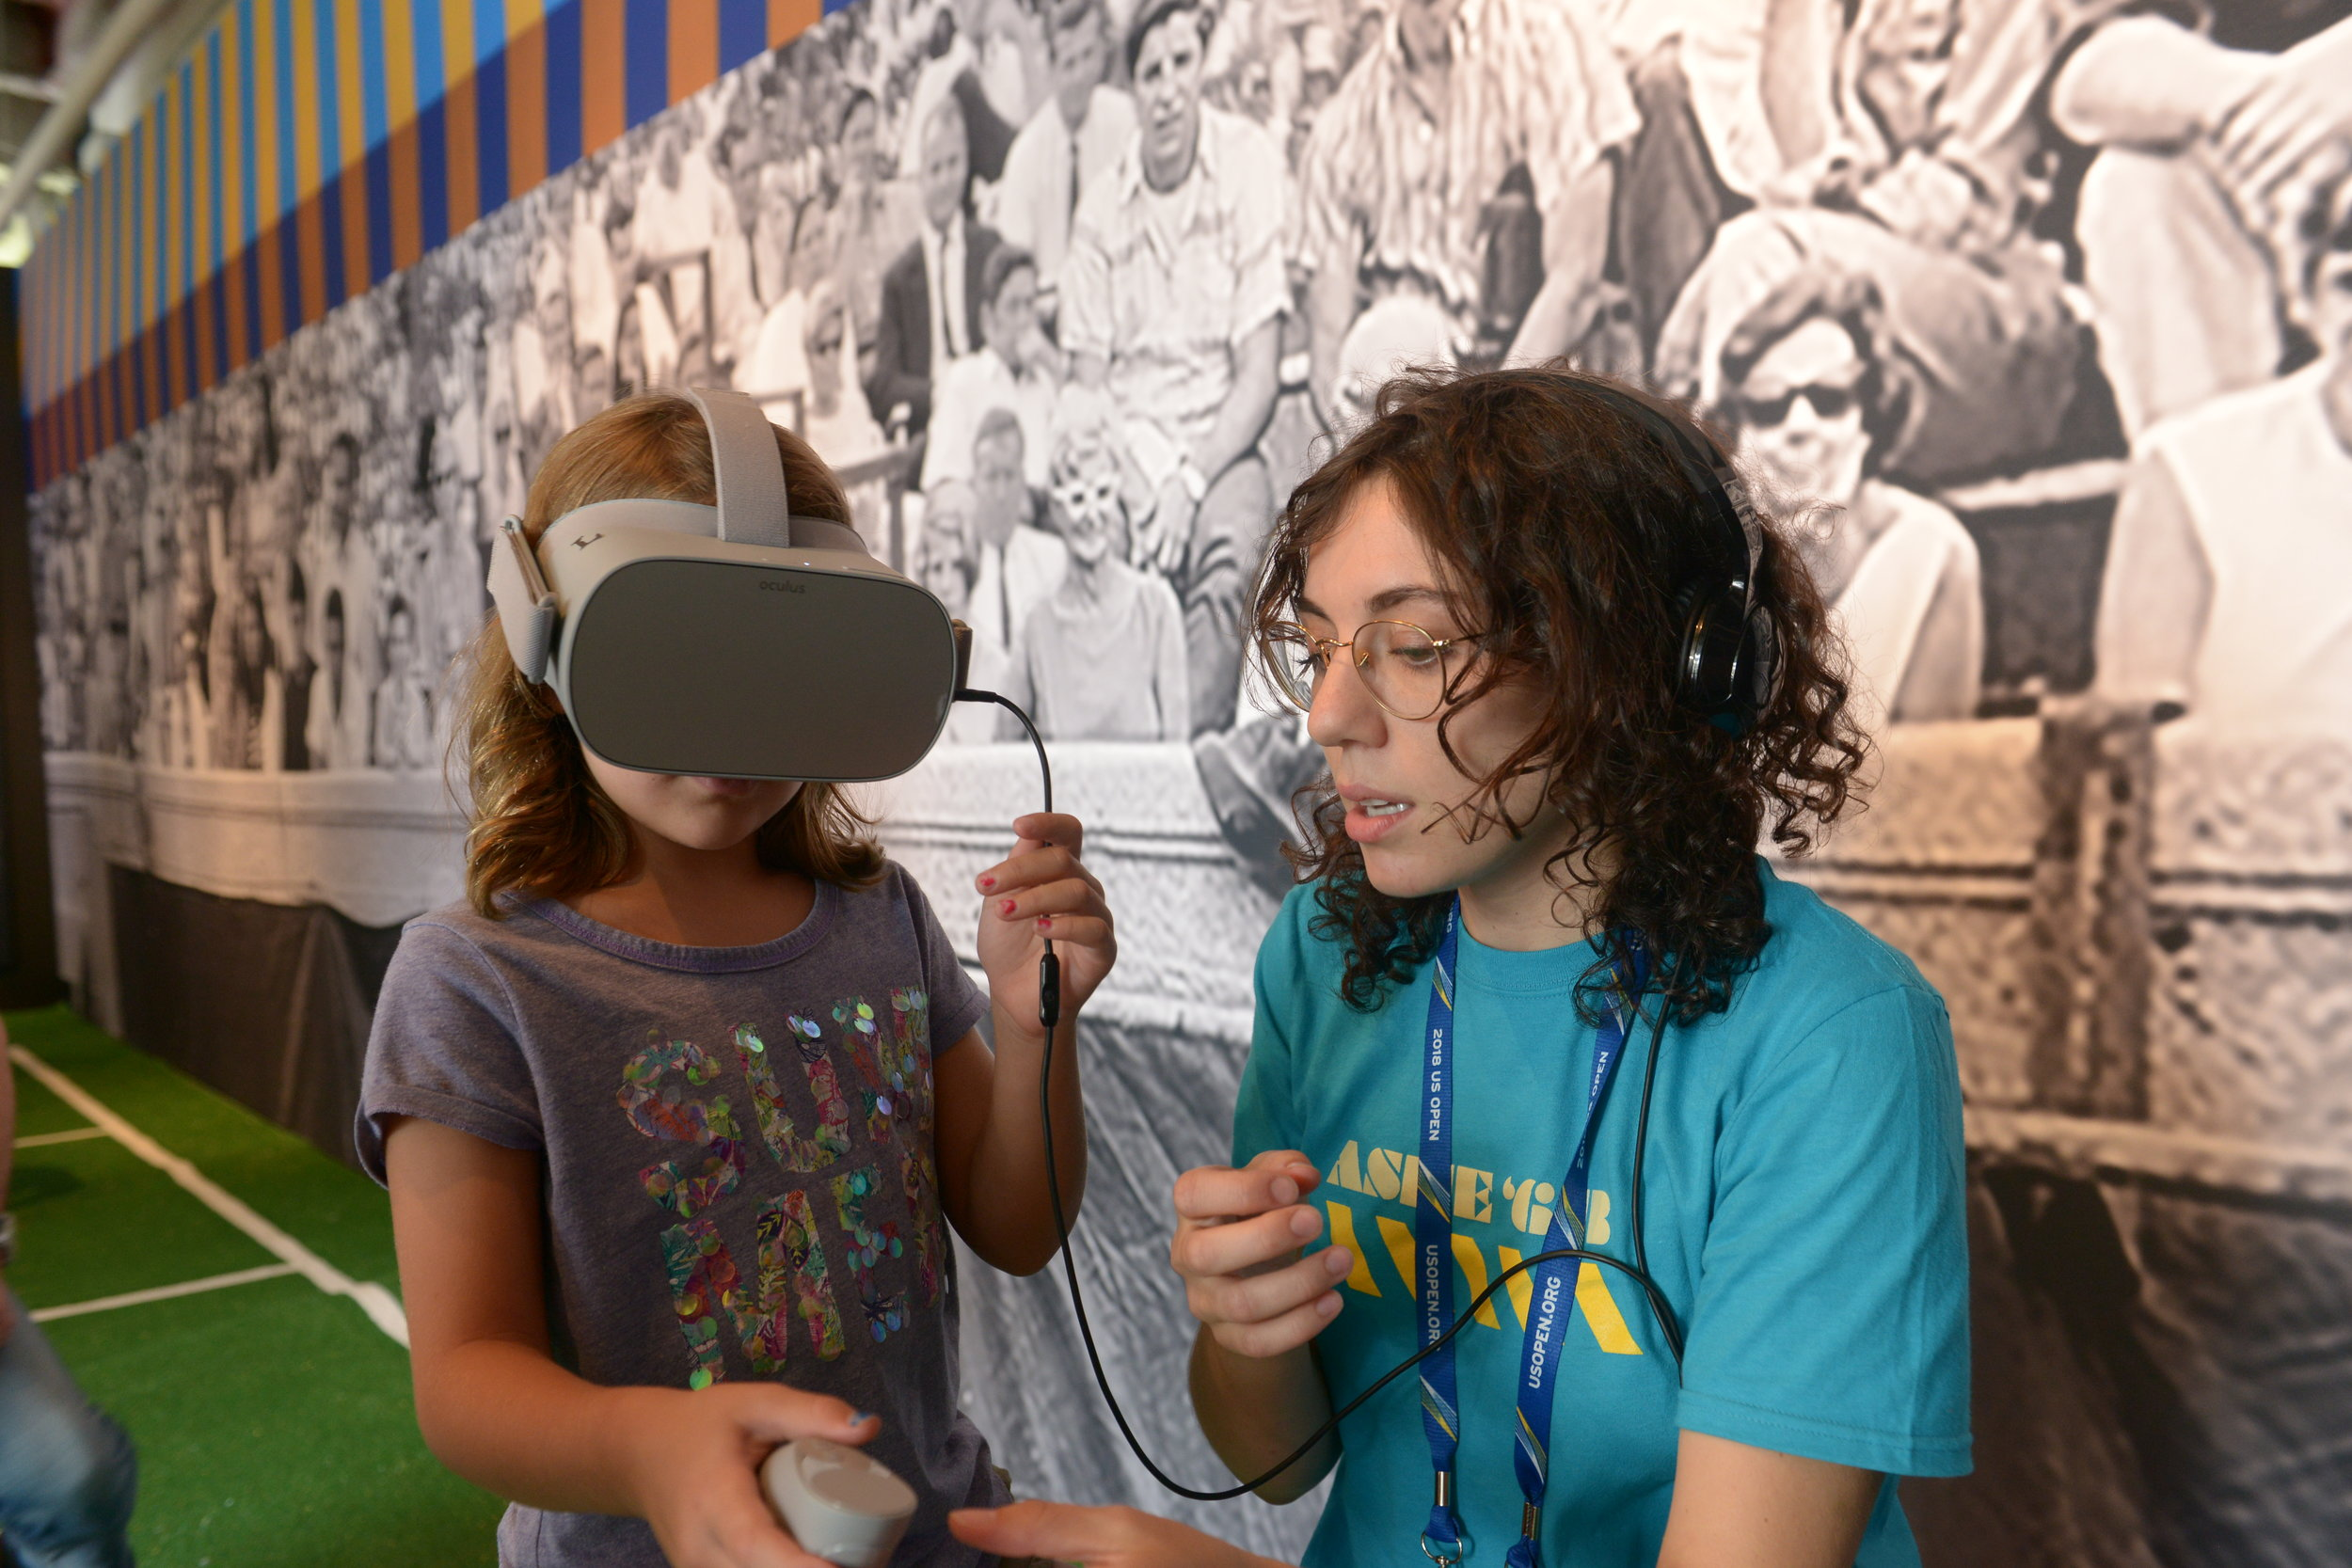 At the 2018 US Open, a young one experiencing the Ashe 68 VR